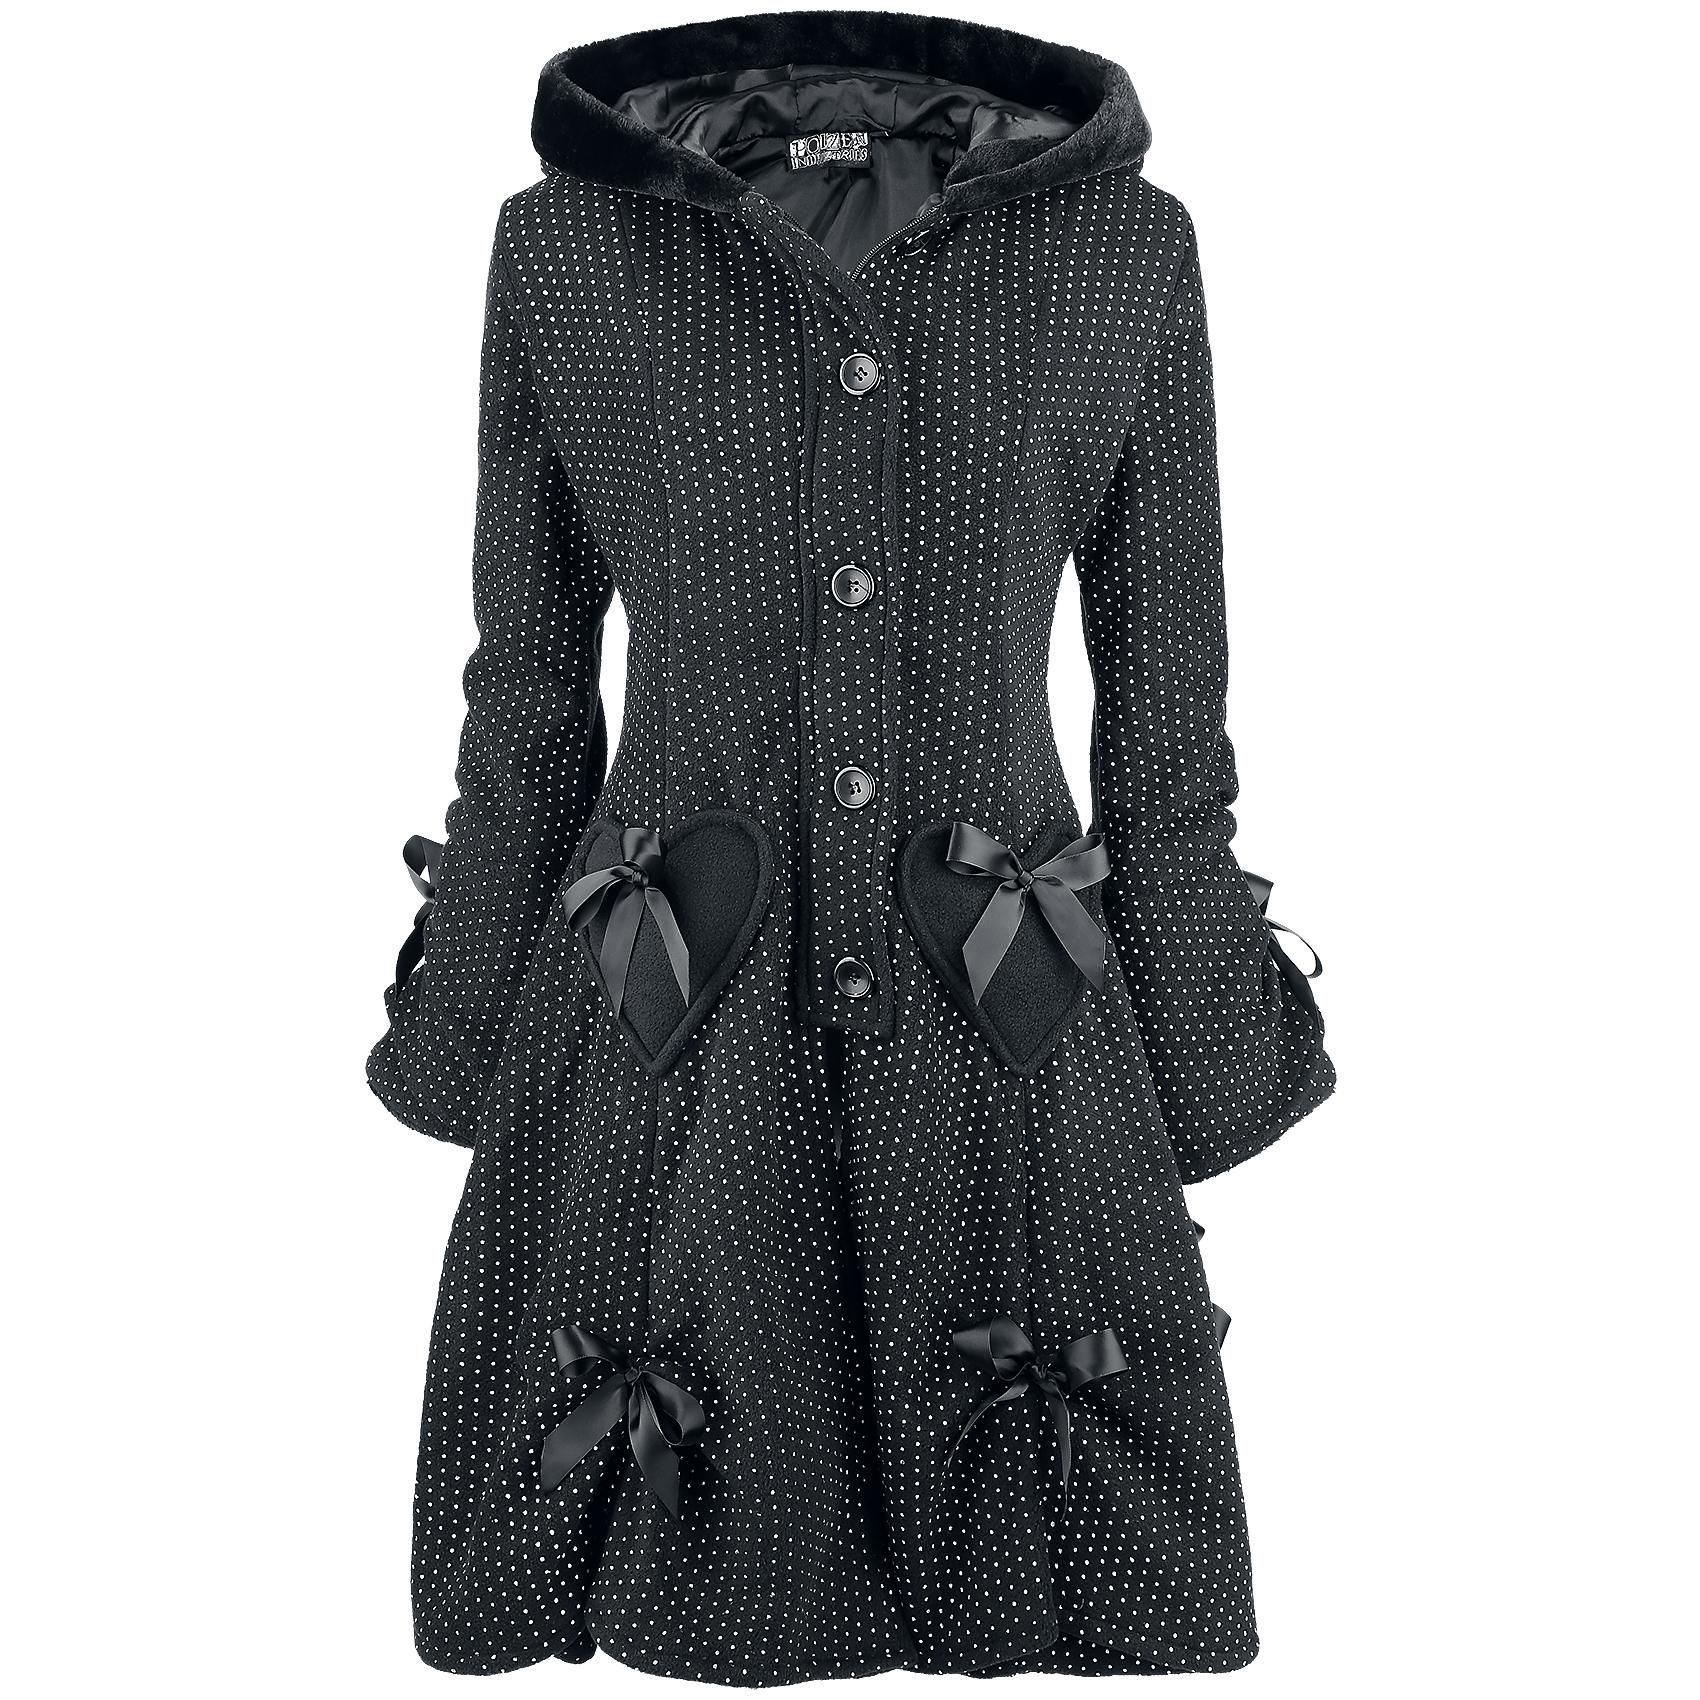 Alice Coat Polka - Winter Coat by Poizen Industries